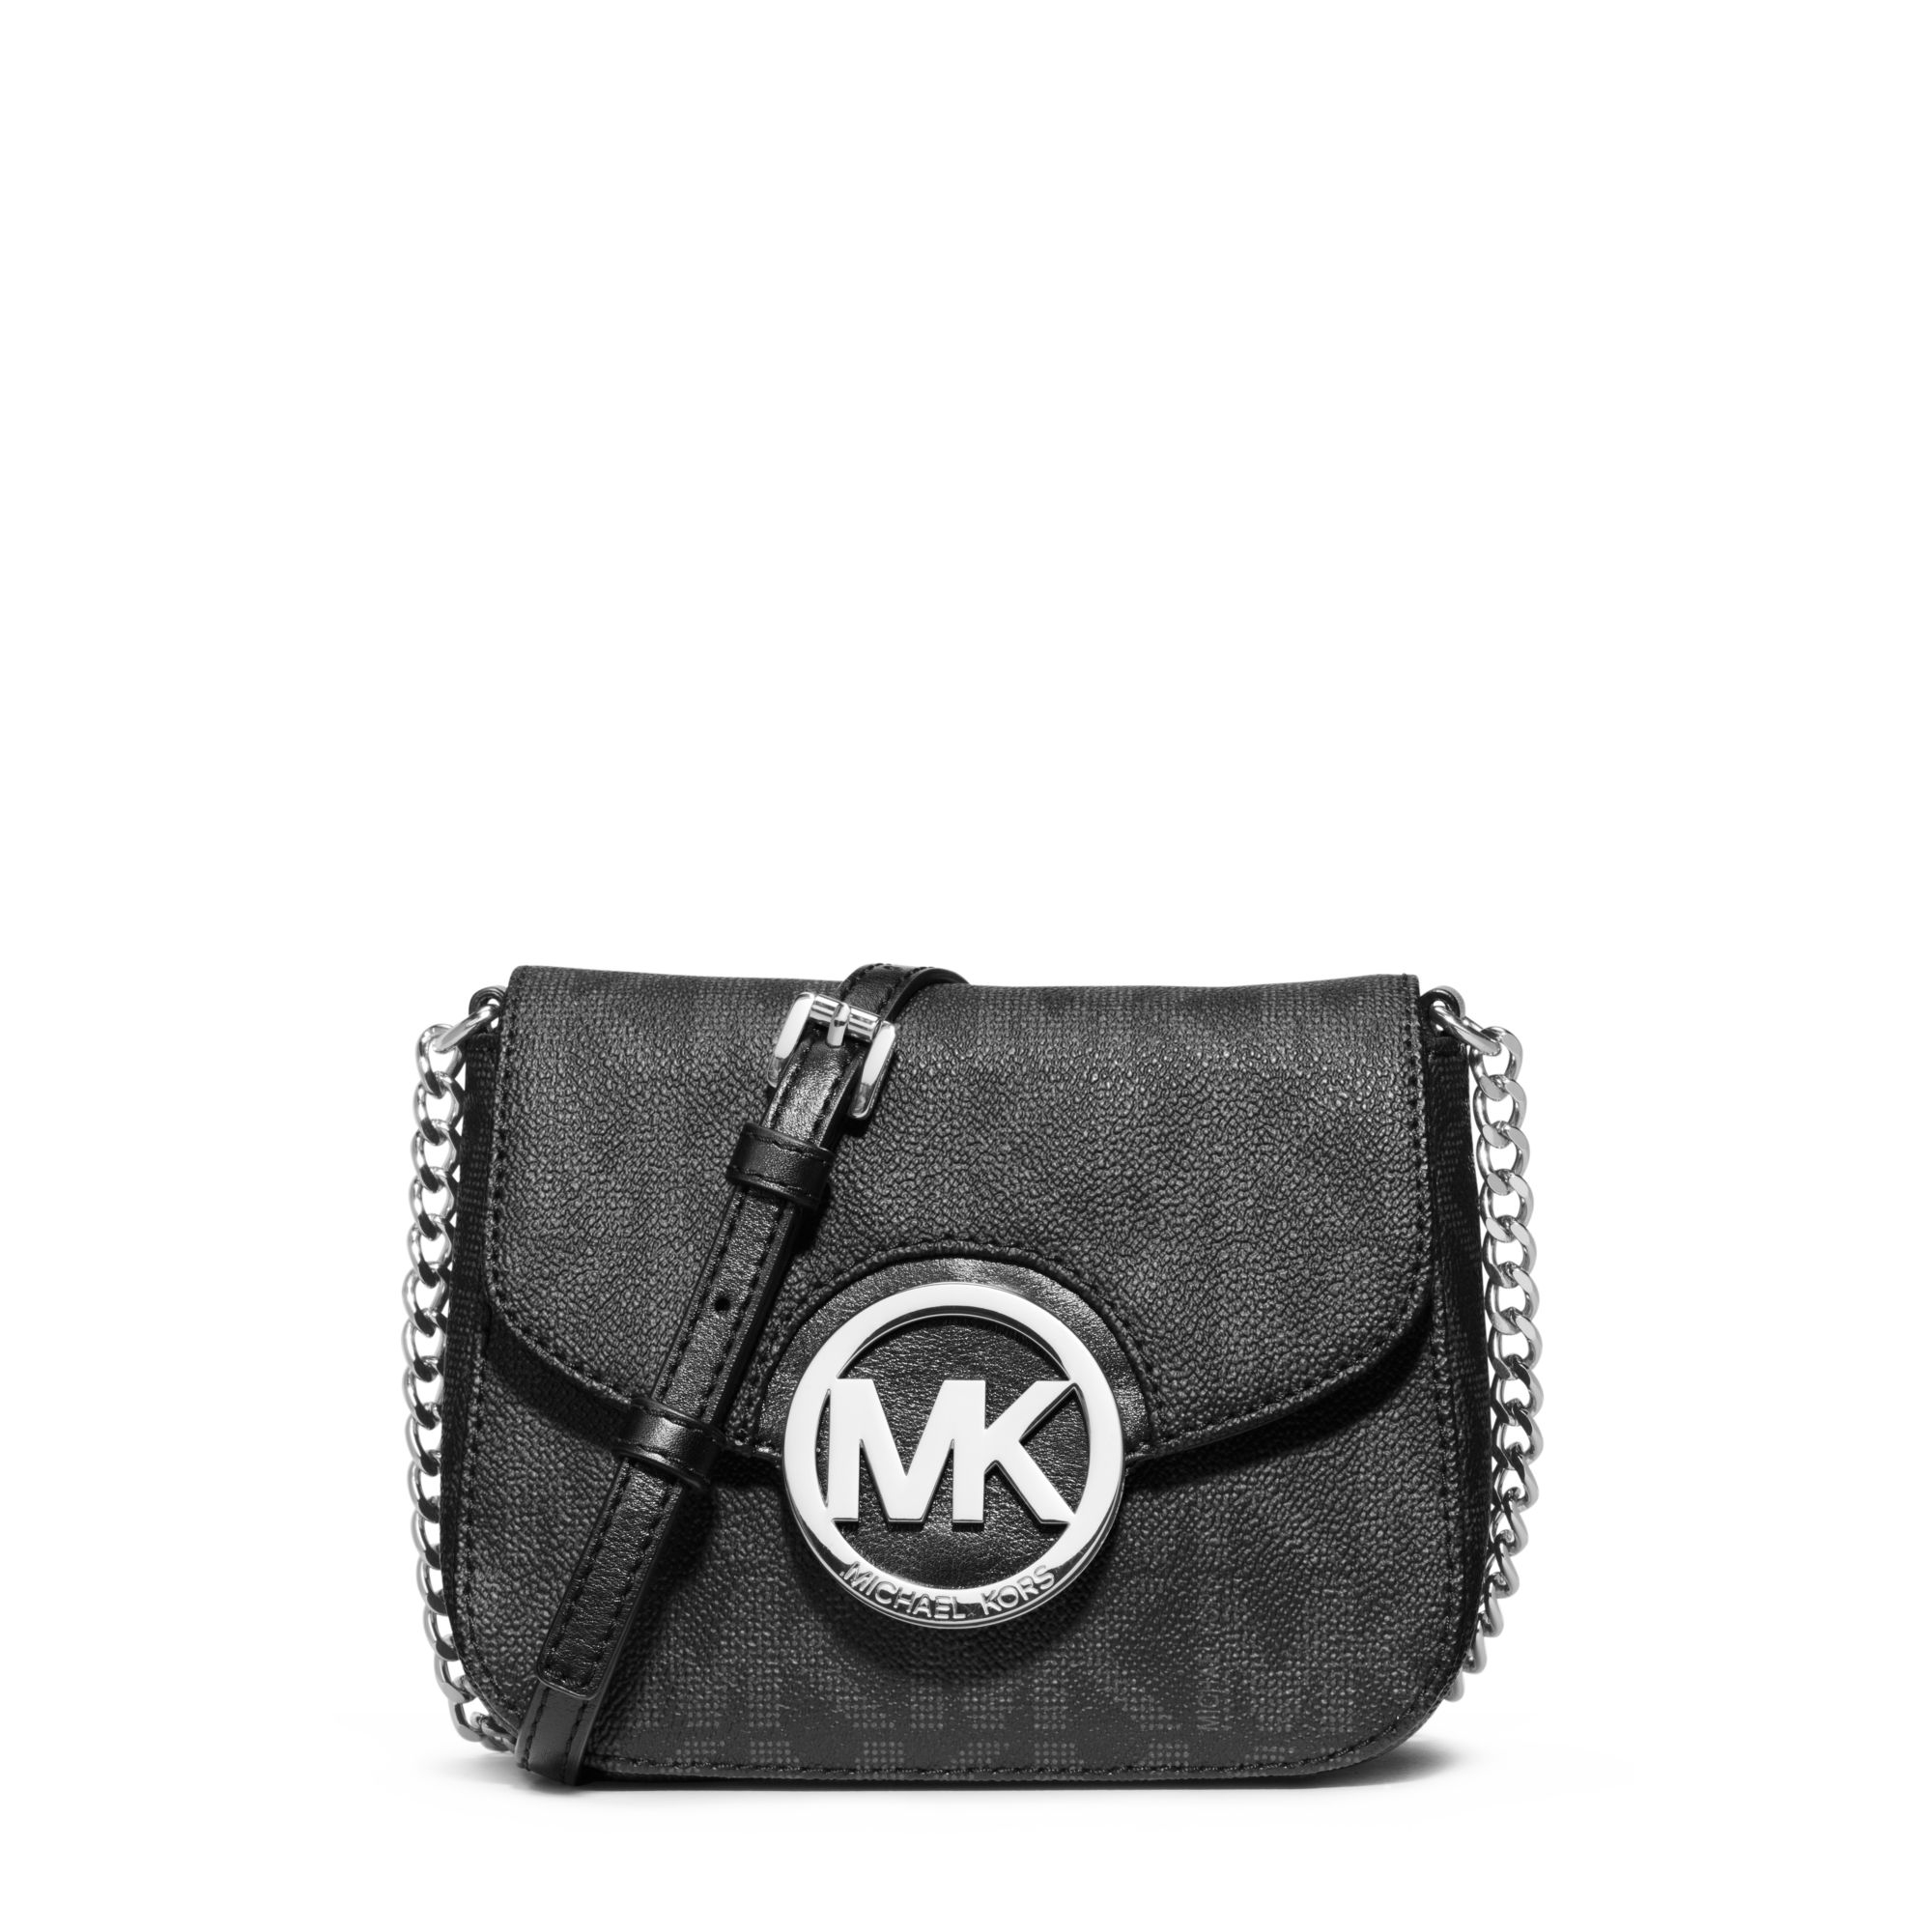 michael kors fulton small crossbody in black lyst. Black Bedroom Furniture Sets. Home Design Ideas